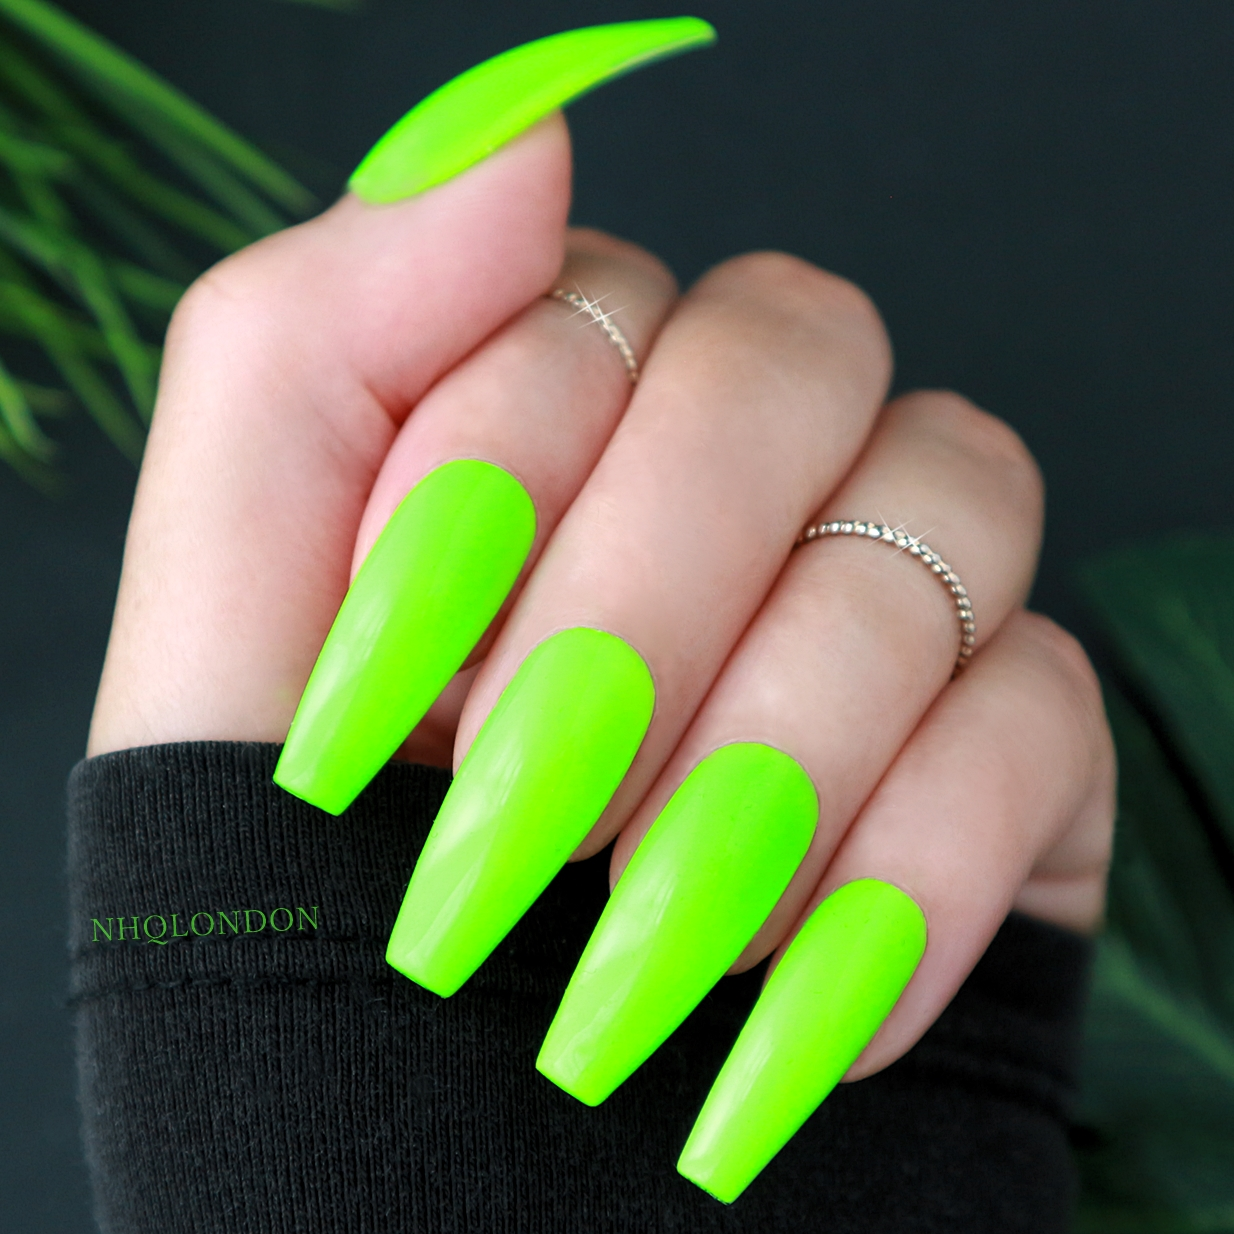 Neon Coffin Nails, Neon Press On Nails NHQ London